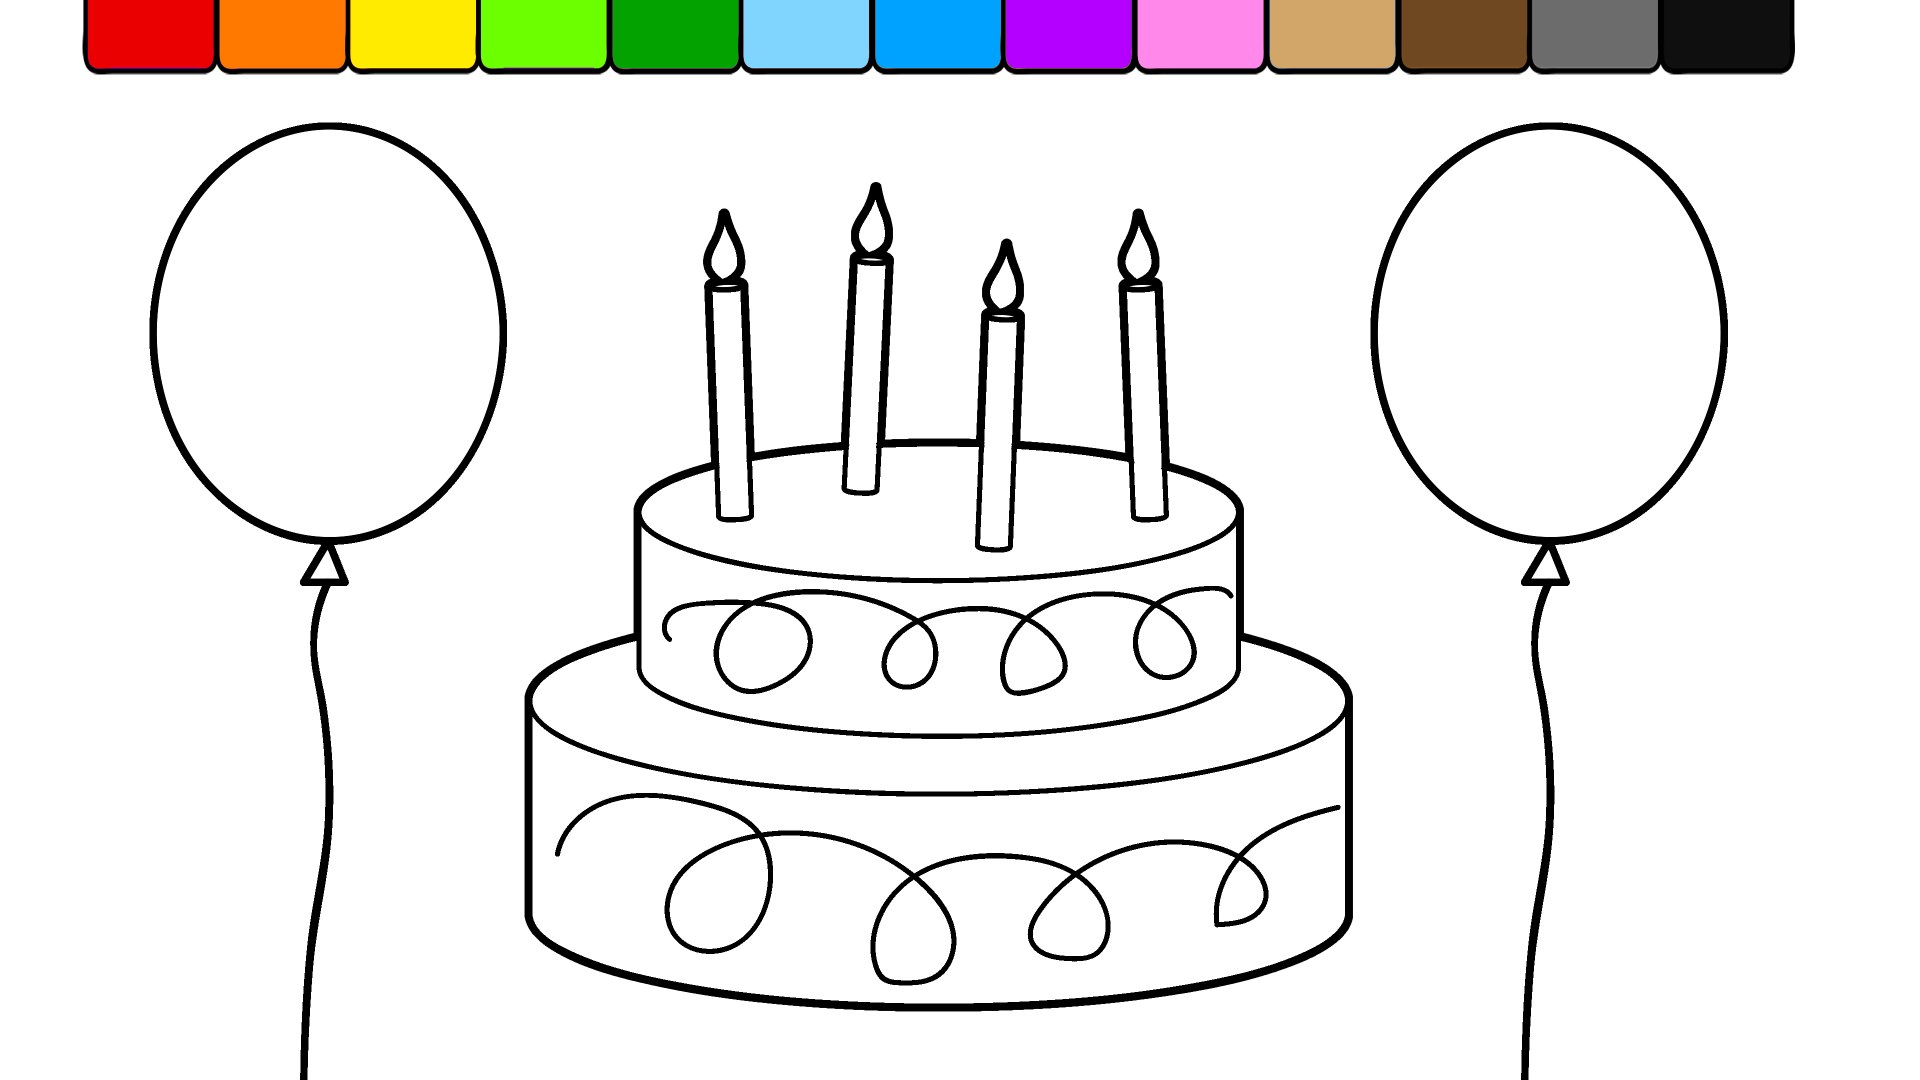 Learn Colors For Kids And Color This Birthday Cake Balloon Coloring Page Video Dailymotion